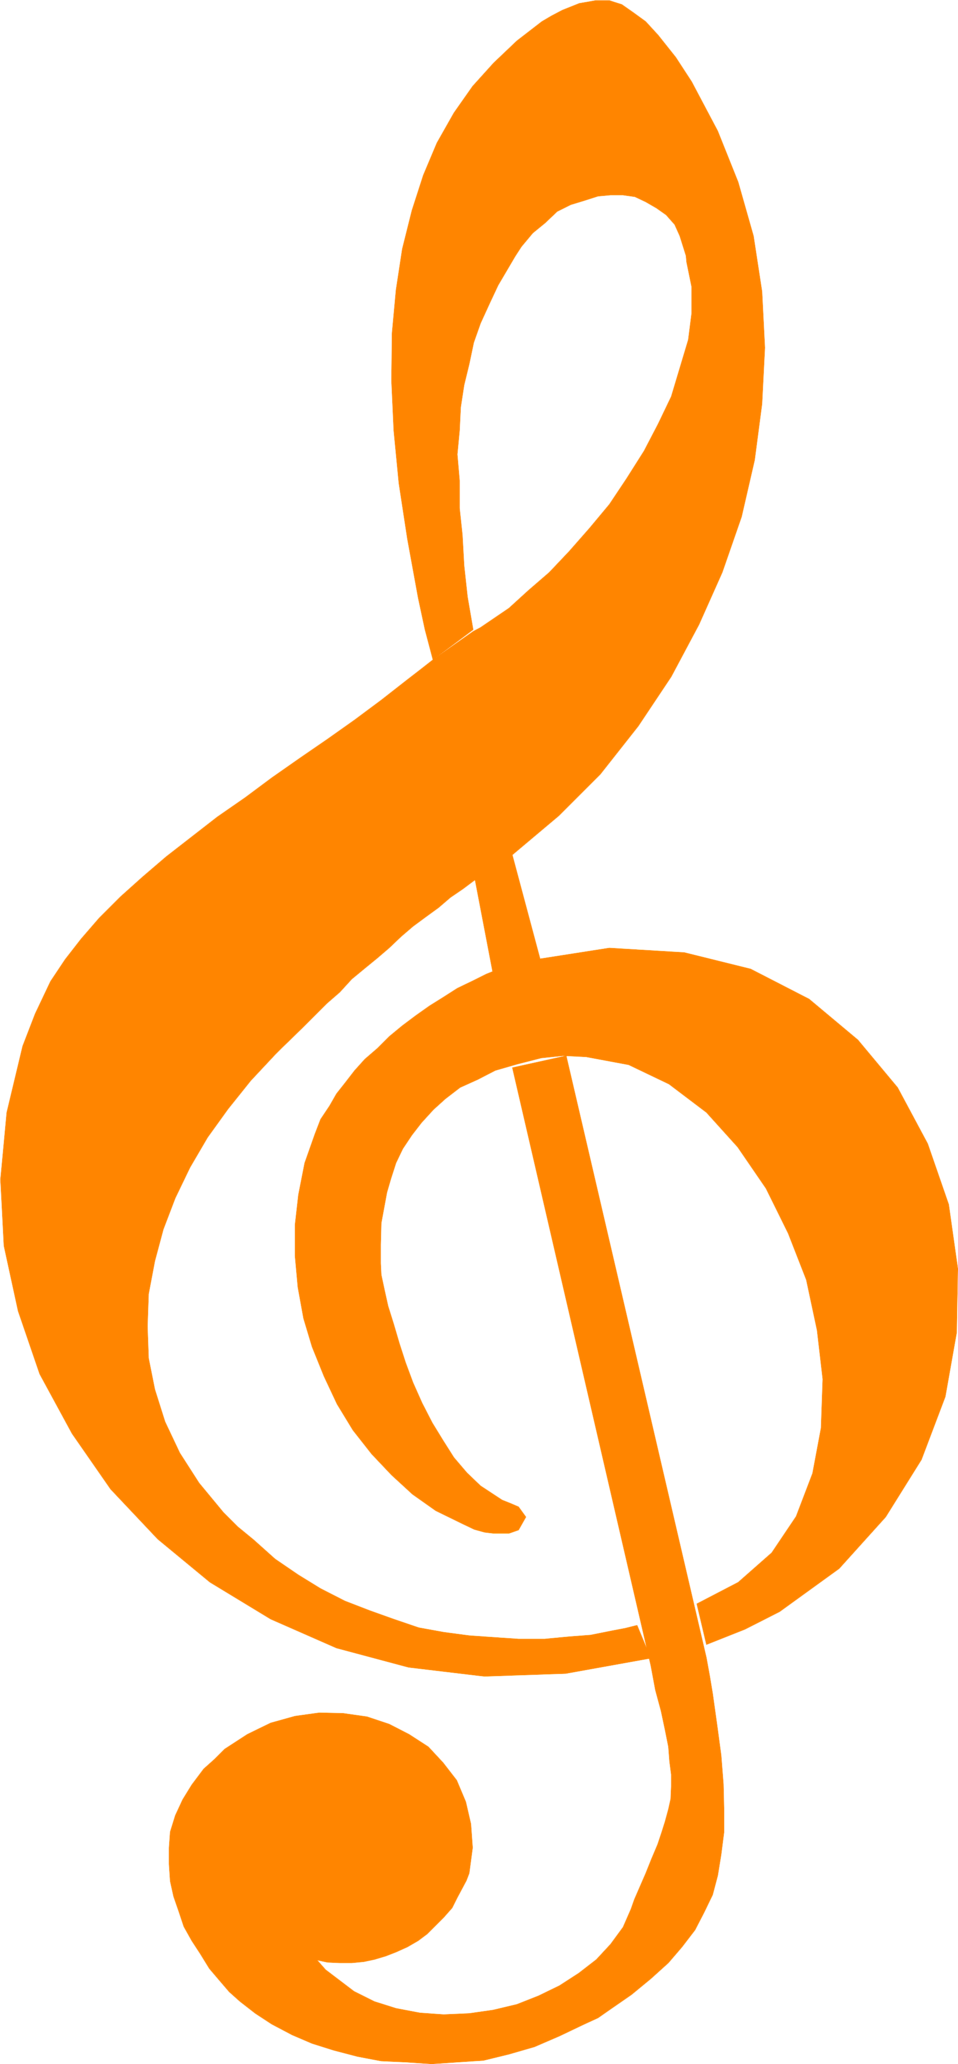 Single Music Notes Symbols Free Download Best Single Music Notes